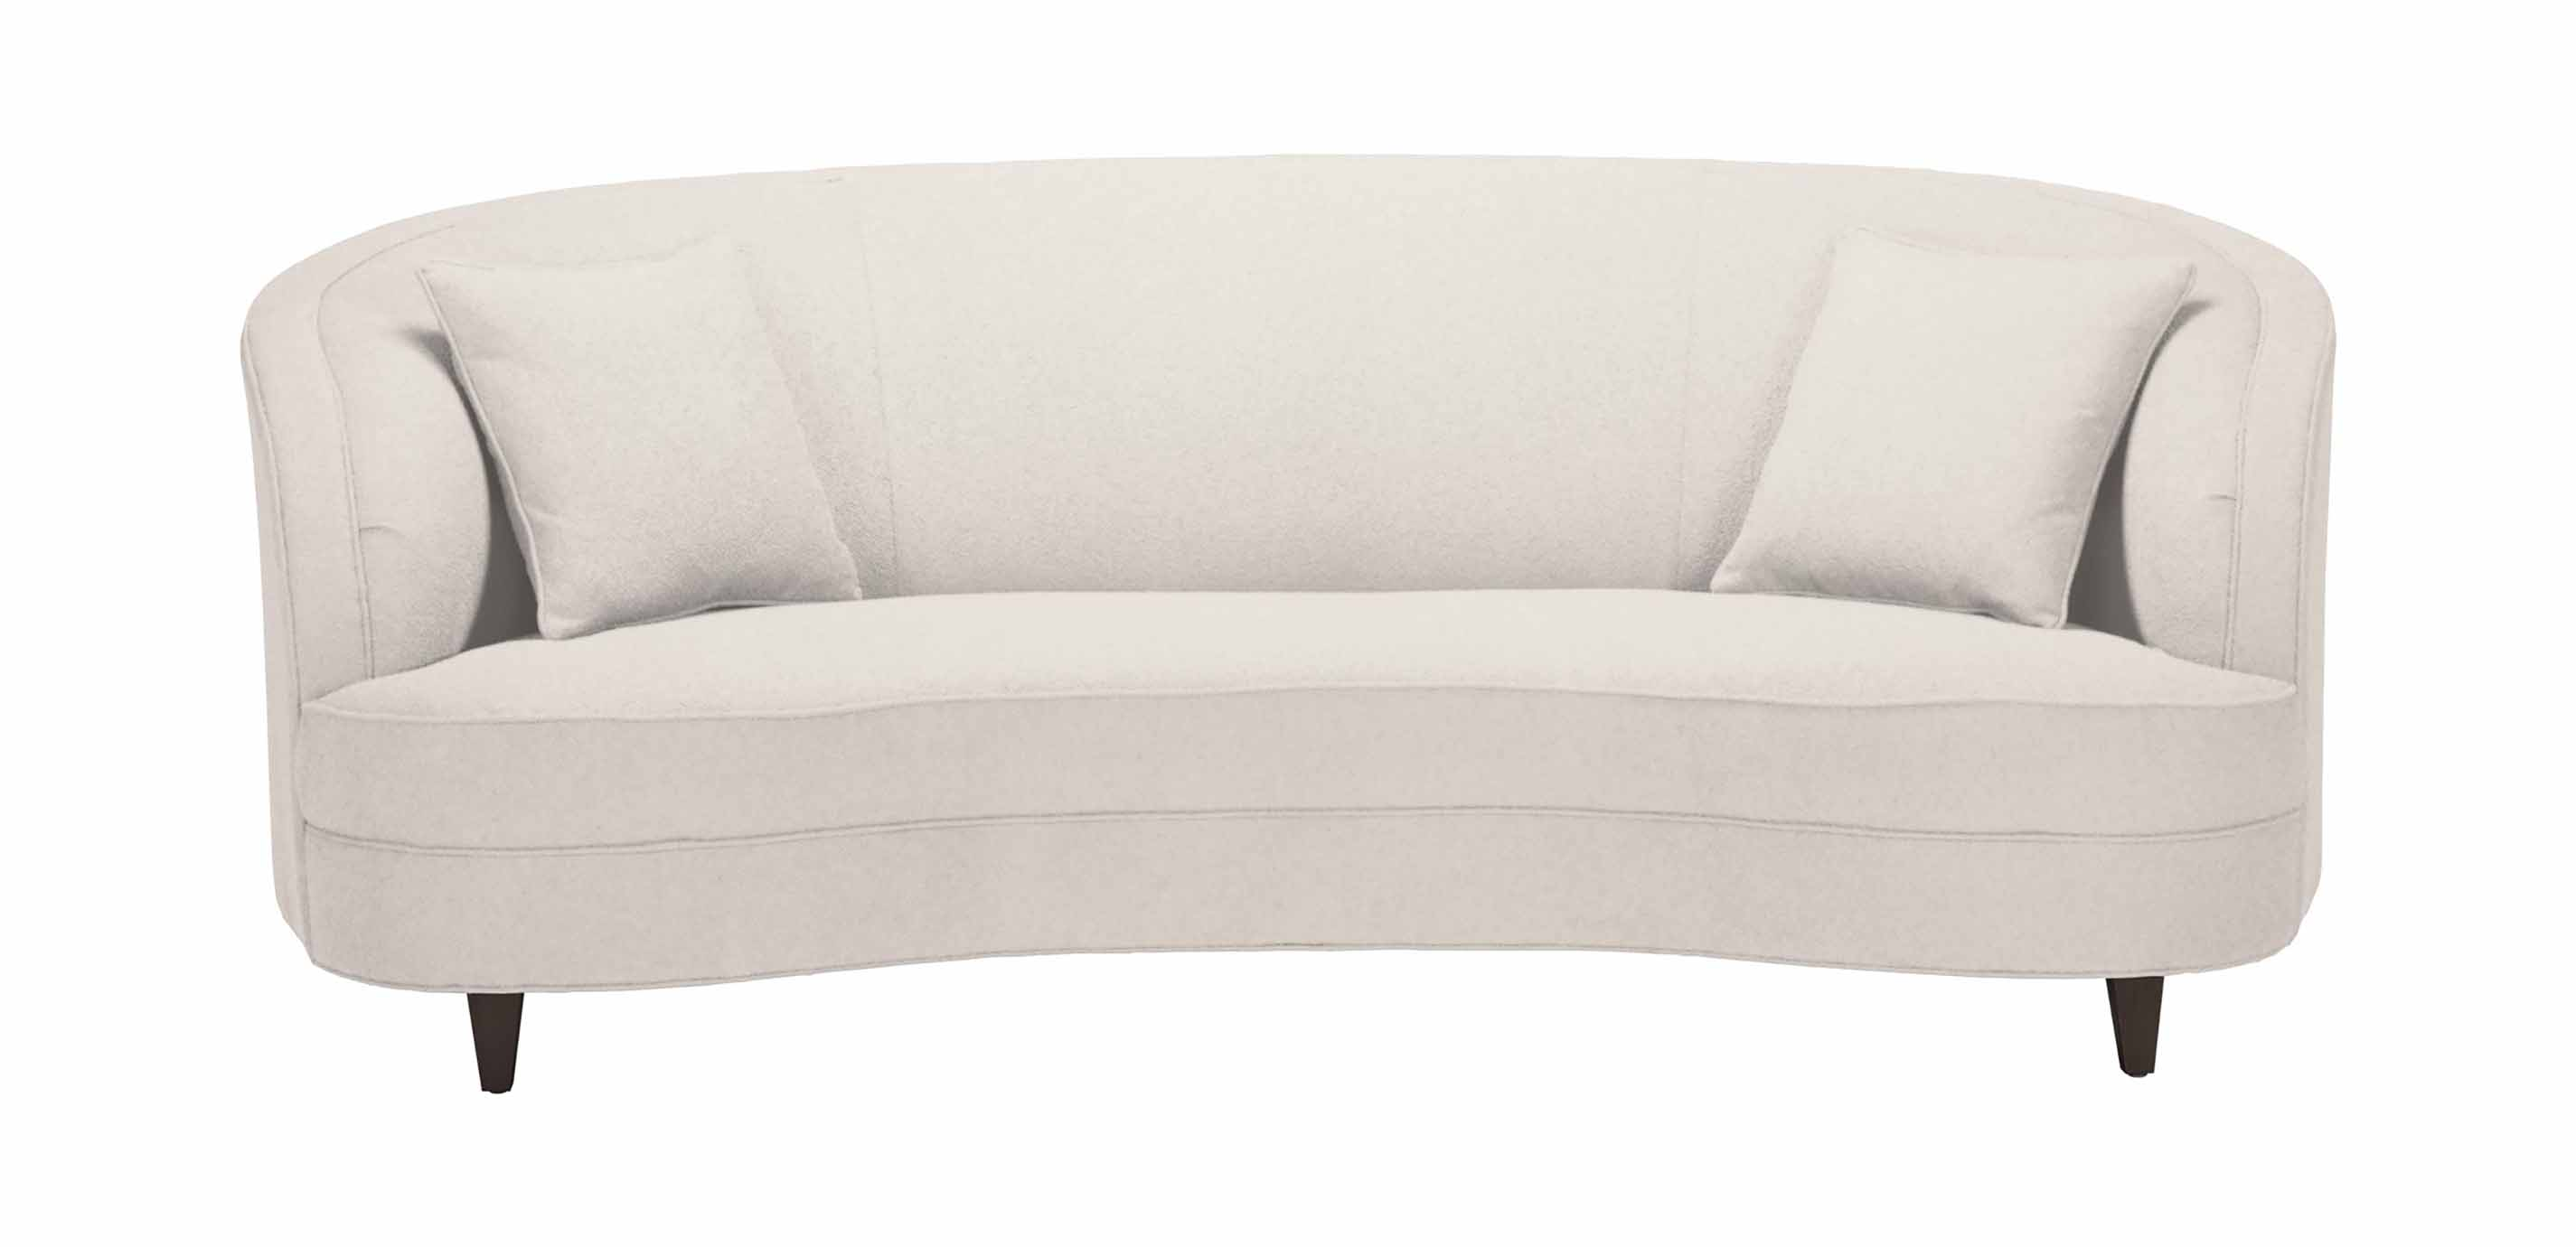 Channing Curved Sofa Apartment